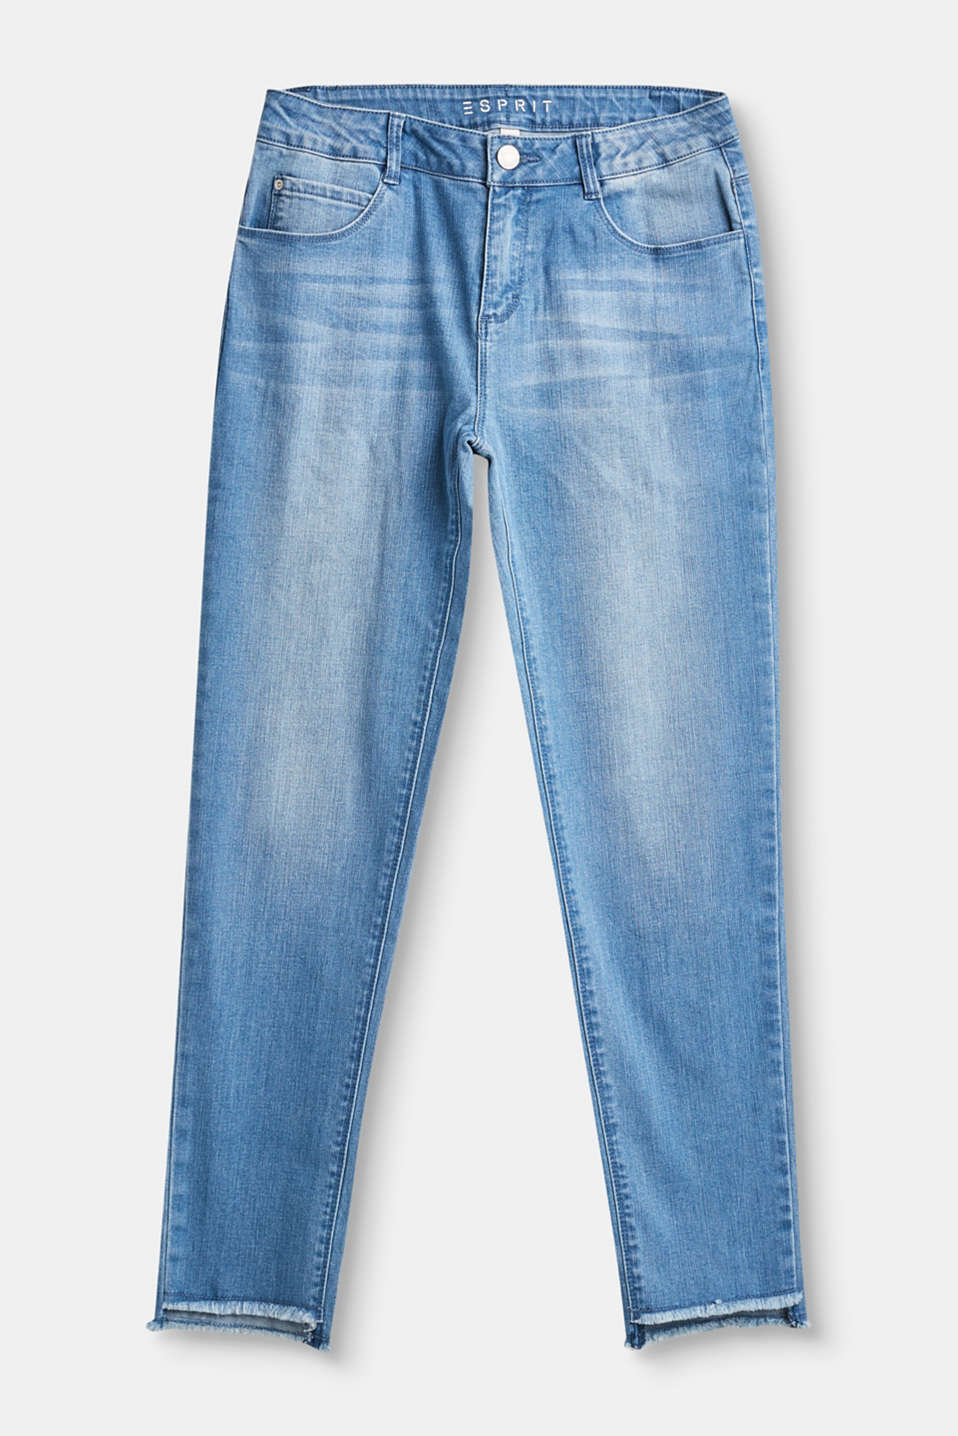 Esprit - Cropped high-waisted jeans + embroidery